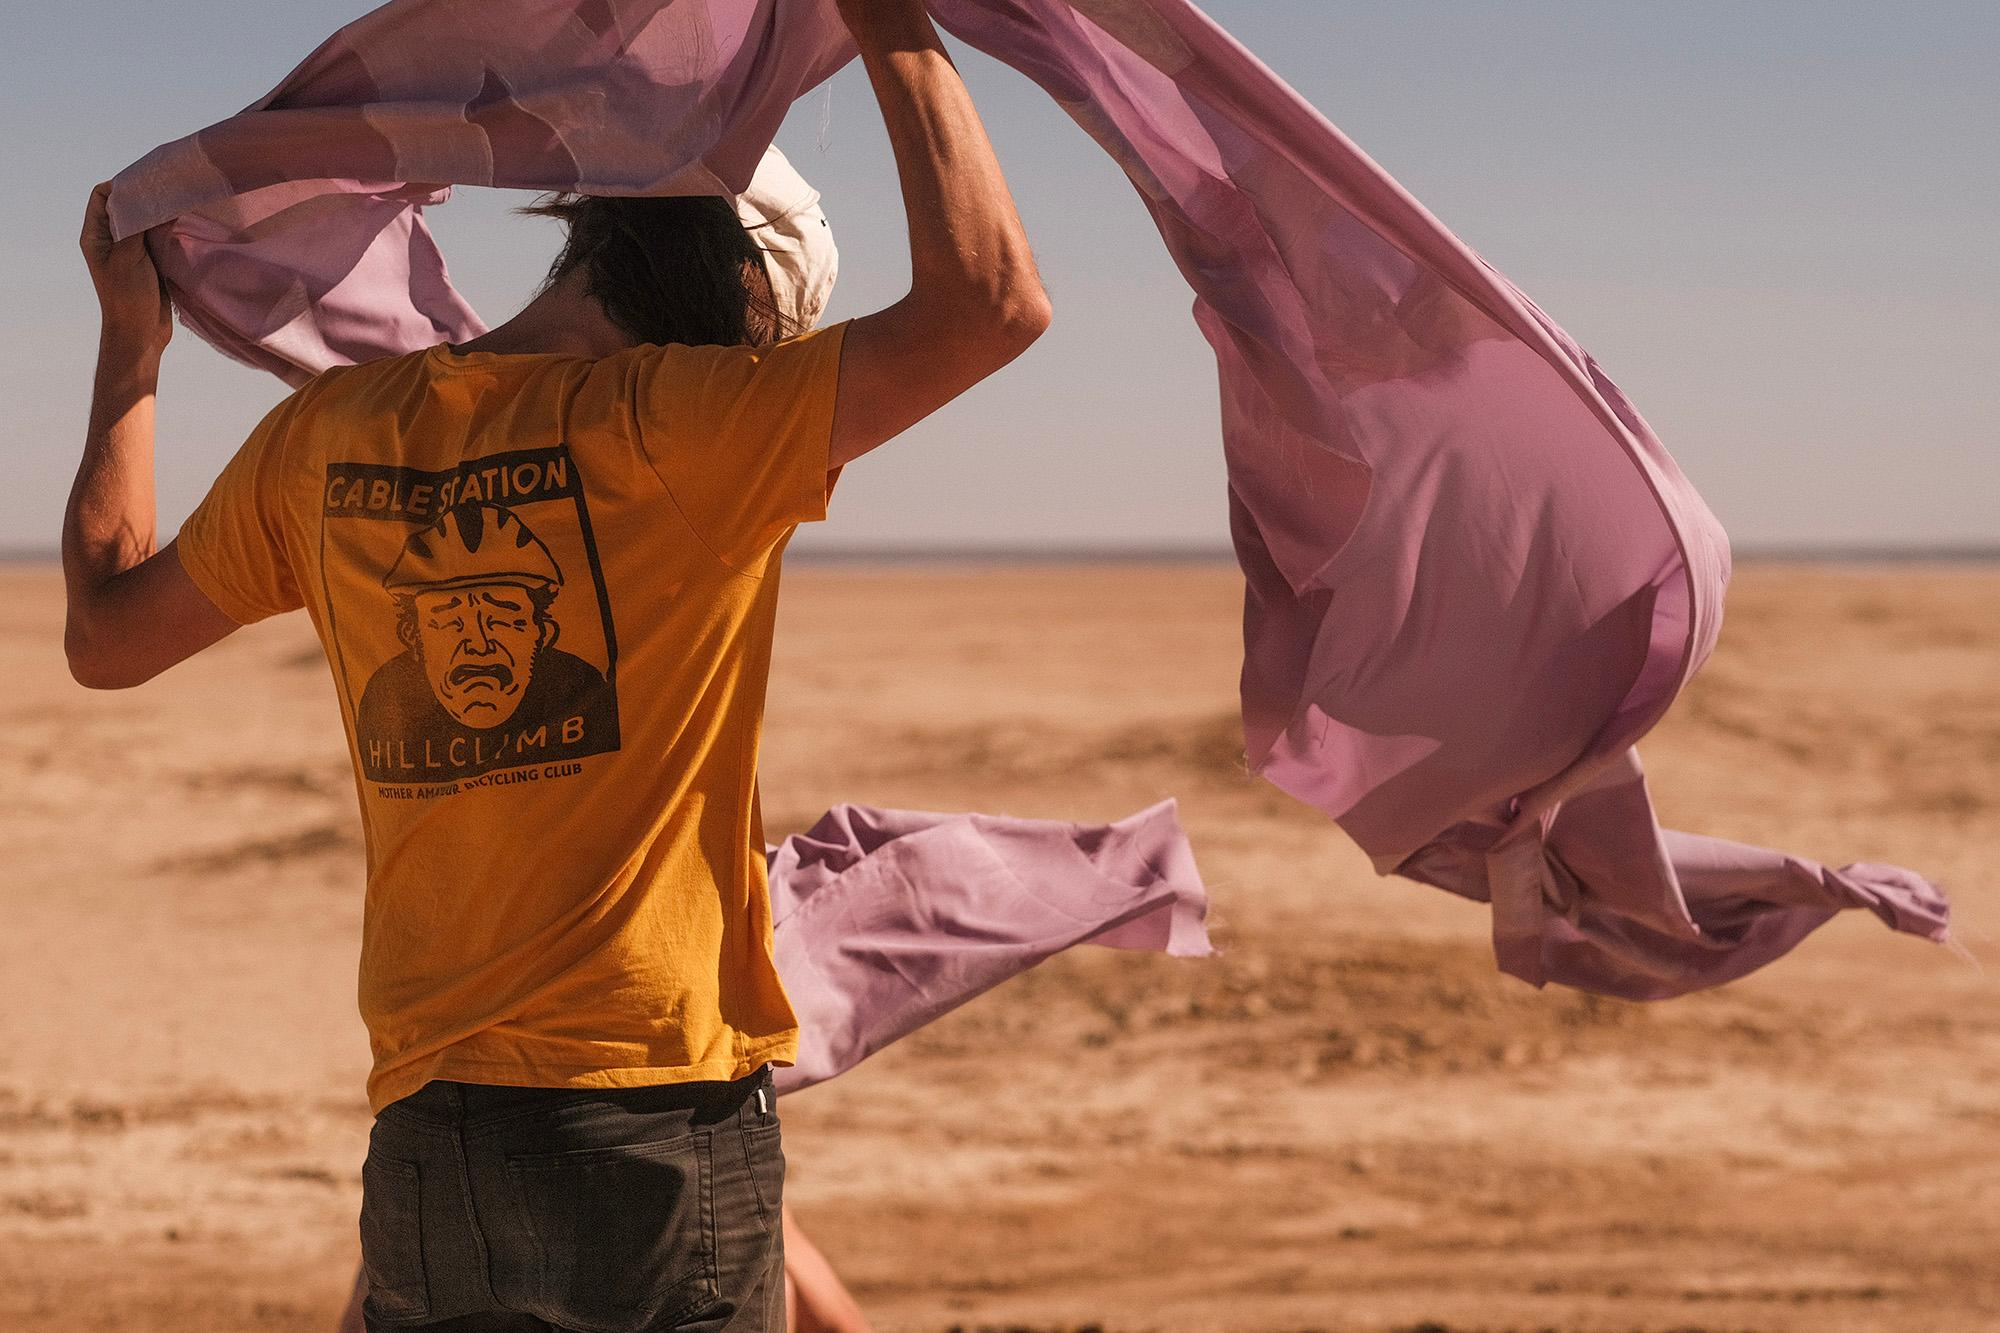 Jared wrangling the finish line - it's getting windy. DUST, Verneukpan, 2020.